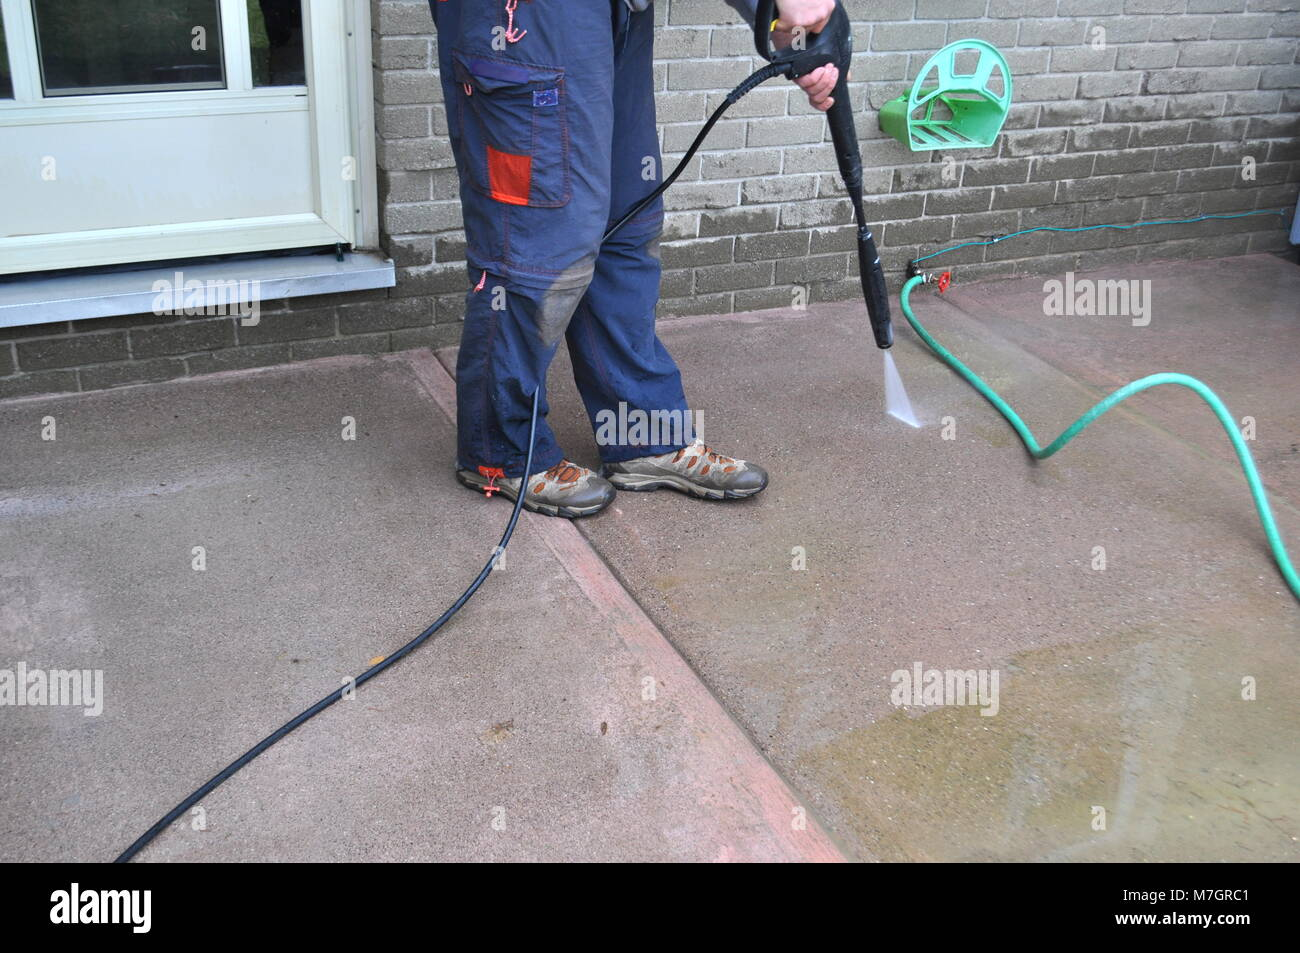 Spring yard work - man cleaning a sidewalk with a pressure washer. Man cleaning a sidewalk with a pressure washer - Stock Image